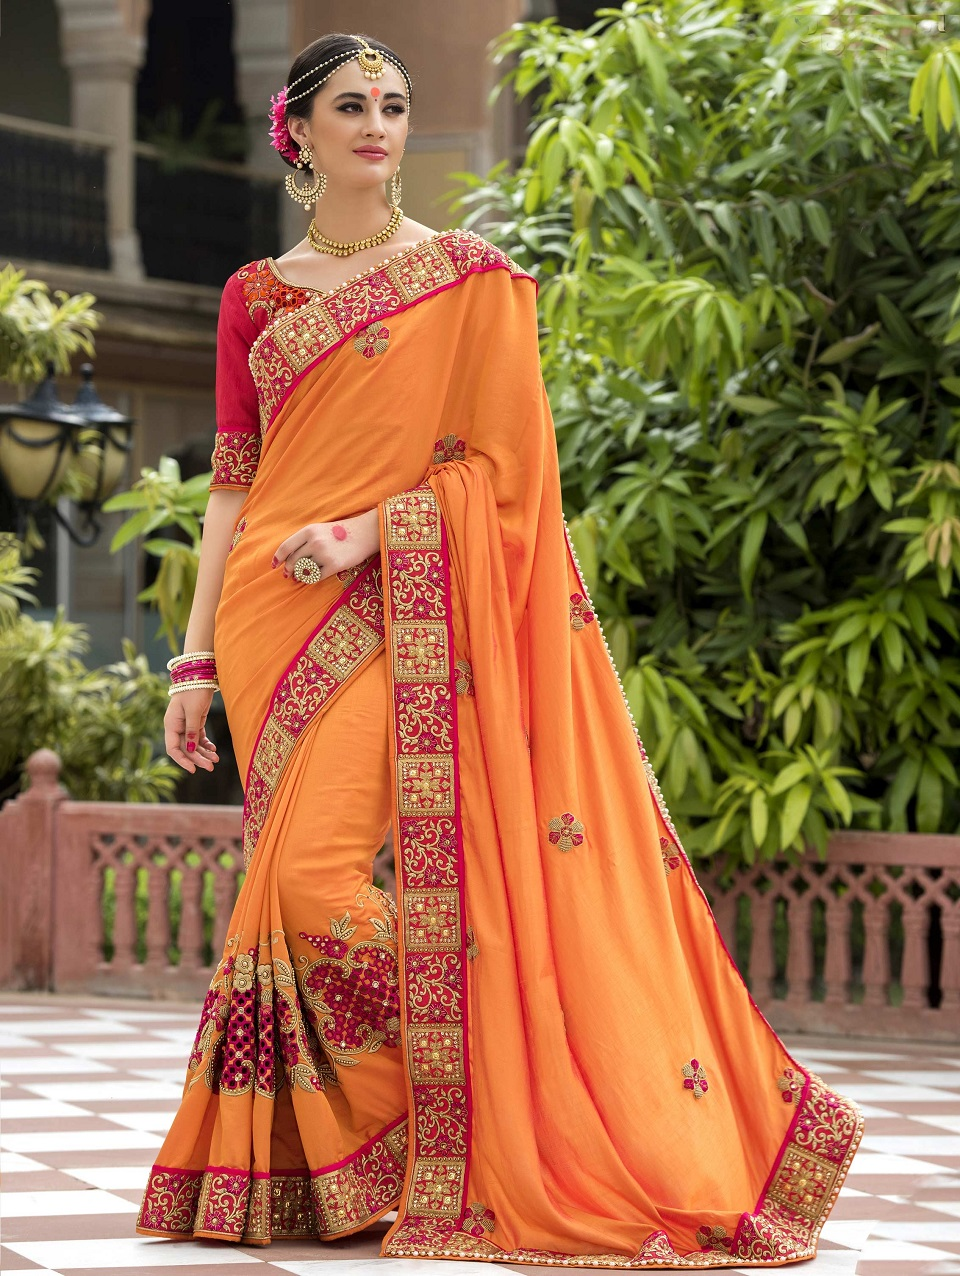 Nice Latest Designs Of Houses In India #3: Indian-Wedding-Saree-Latest-Designs-Trends-Collection-2017-2018-16.jpg